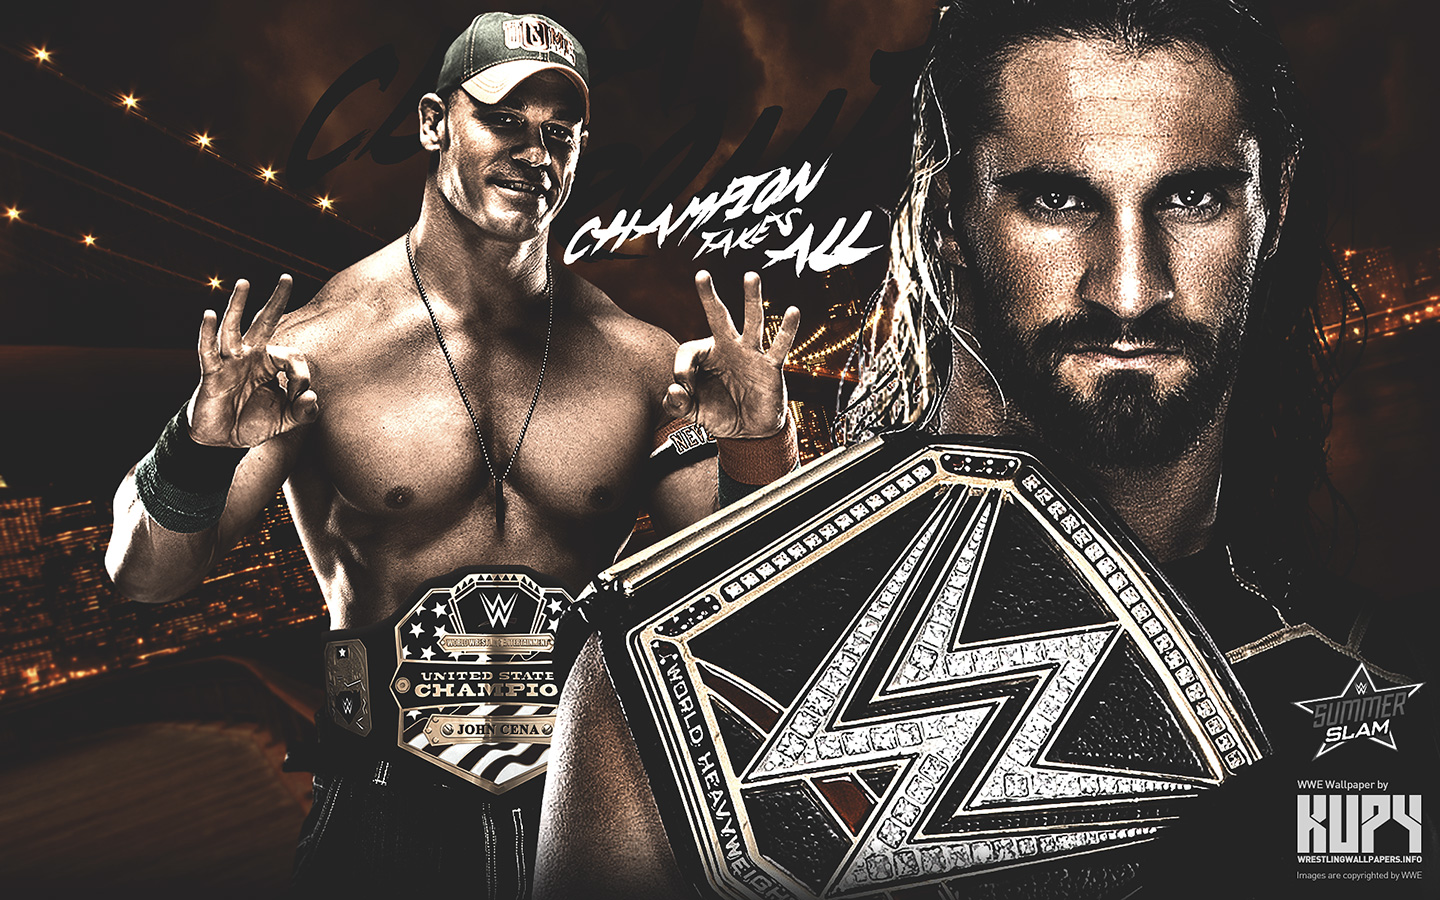 wwe images summerslam 2015 - john cena vs seth rollins hd wallpaper